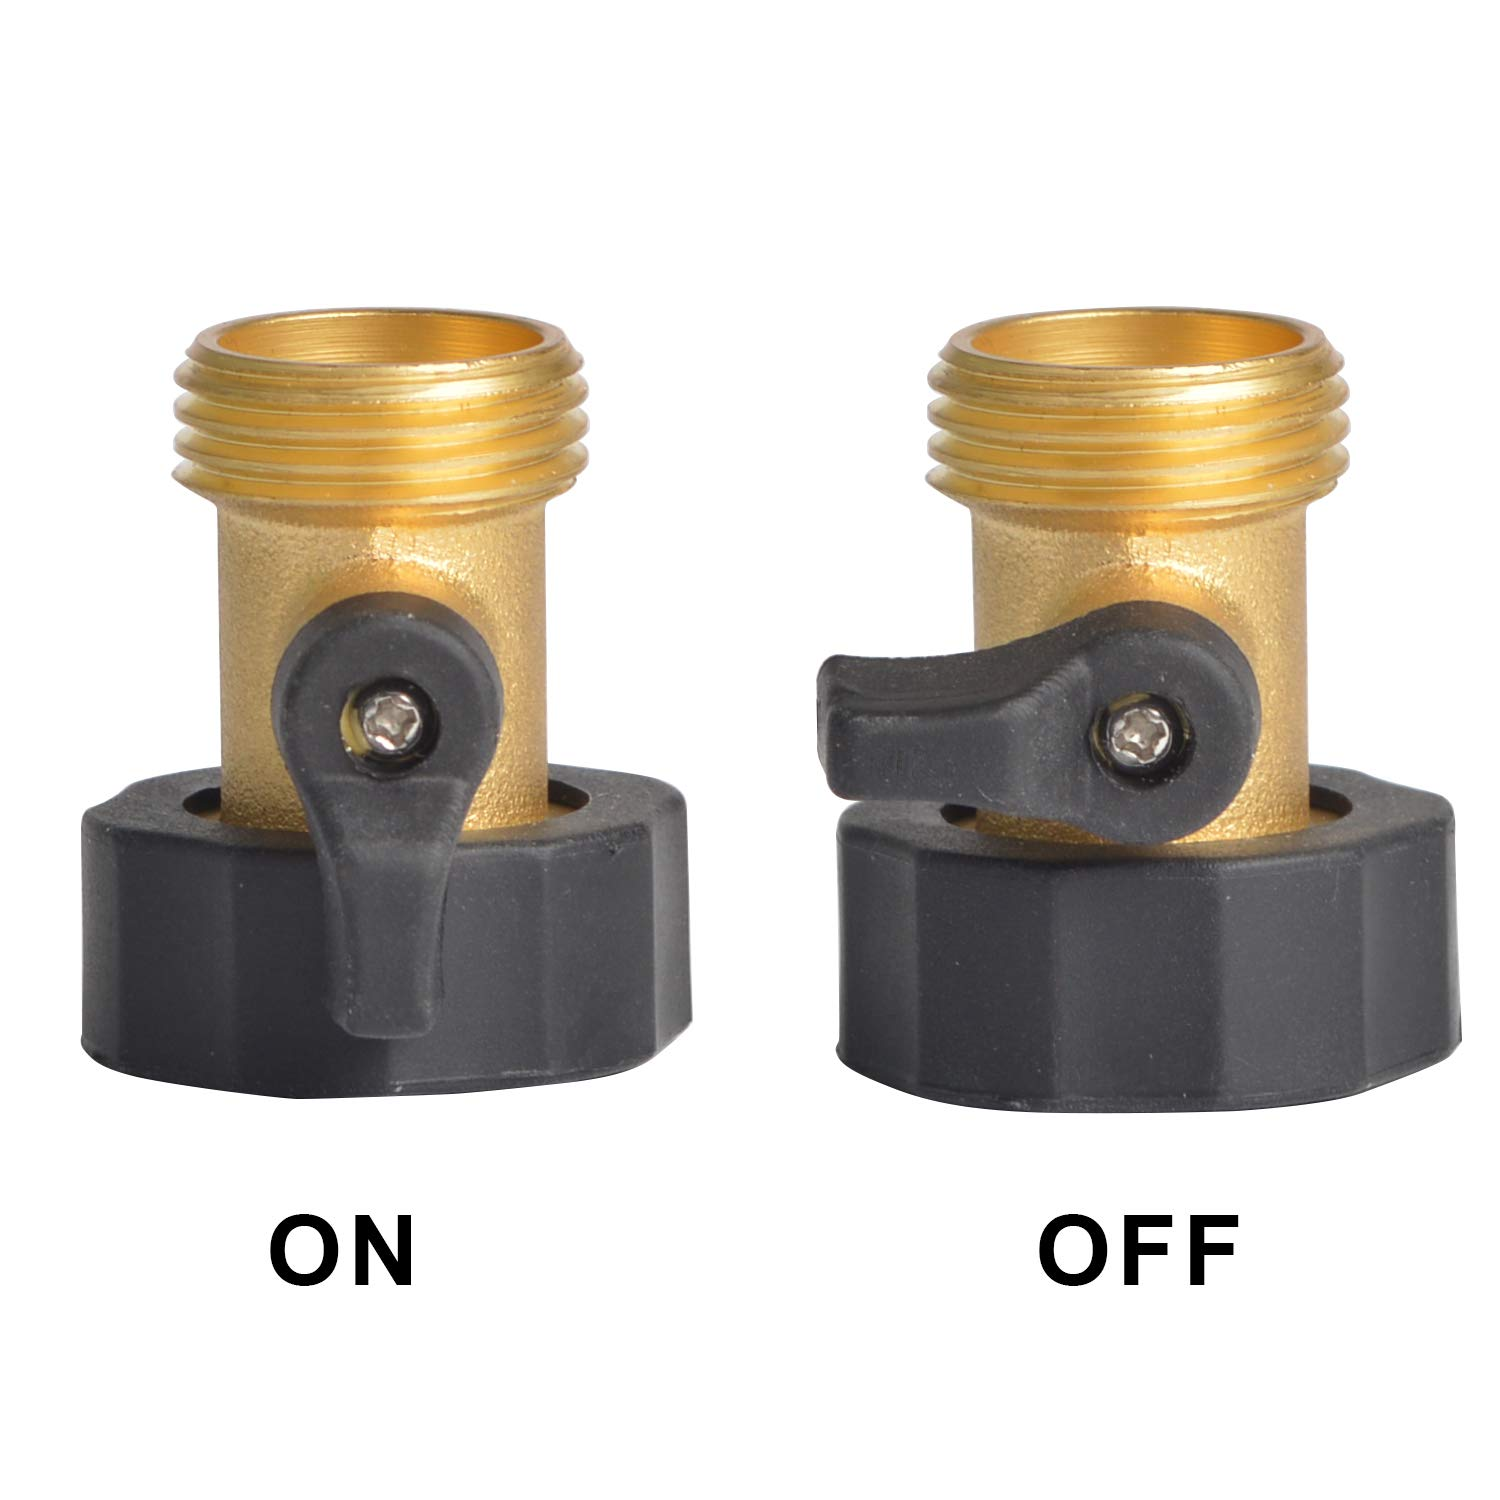 "HYDRO MASTER 3/4"" NH Heavy Duty Brass Shut Off Valves/Garden Hose Connectors with Extra Rubber Seals (2 Pack)"